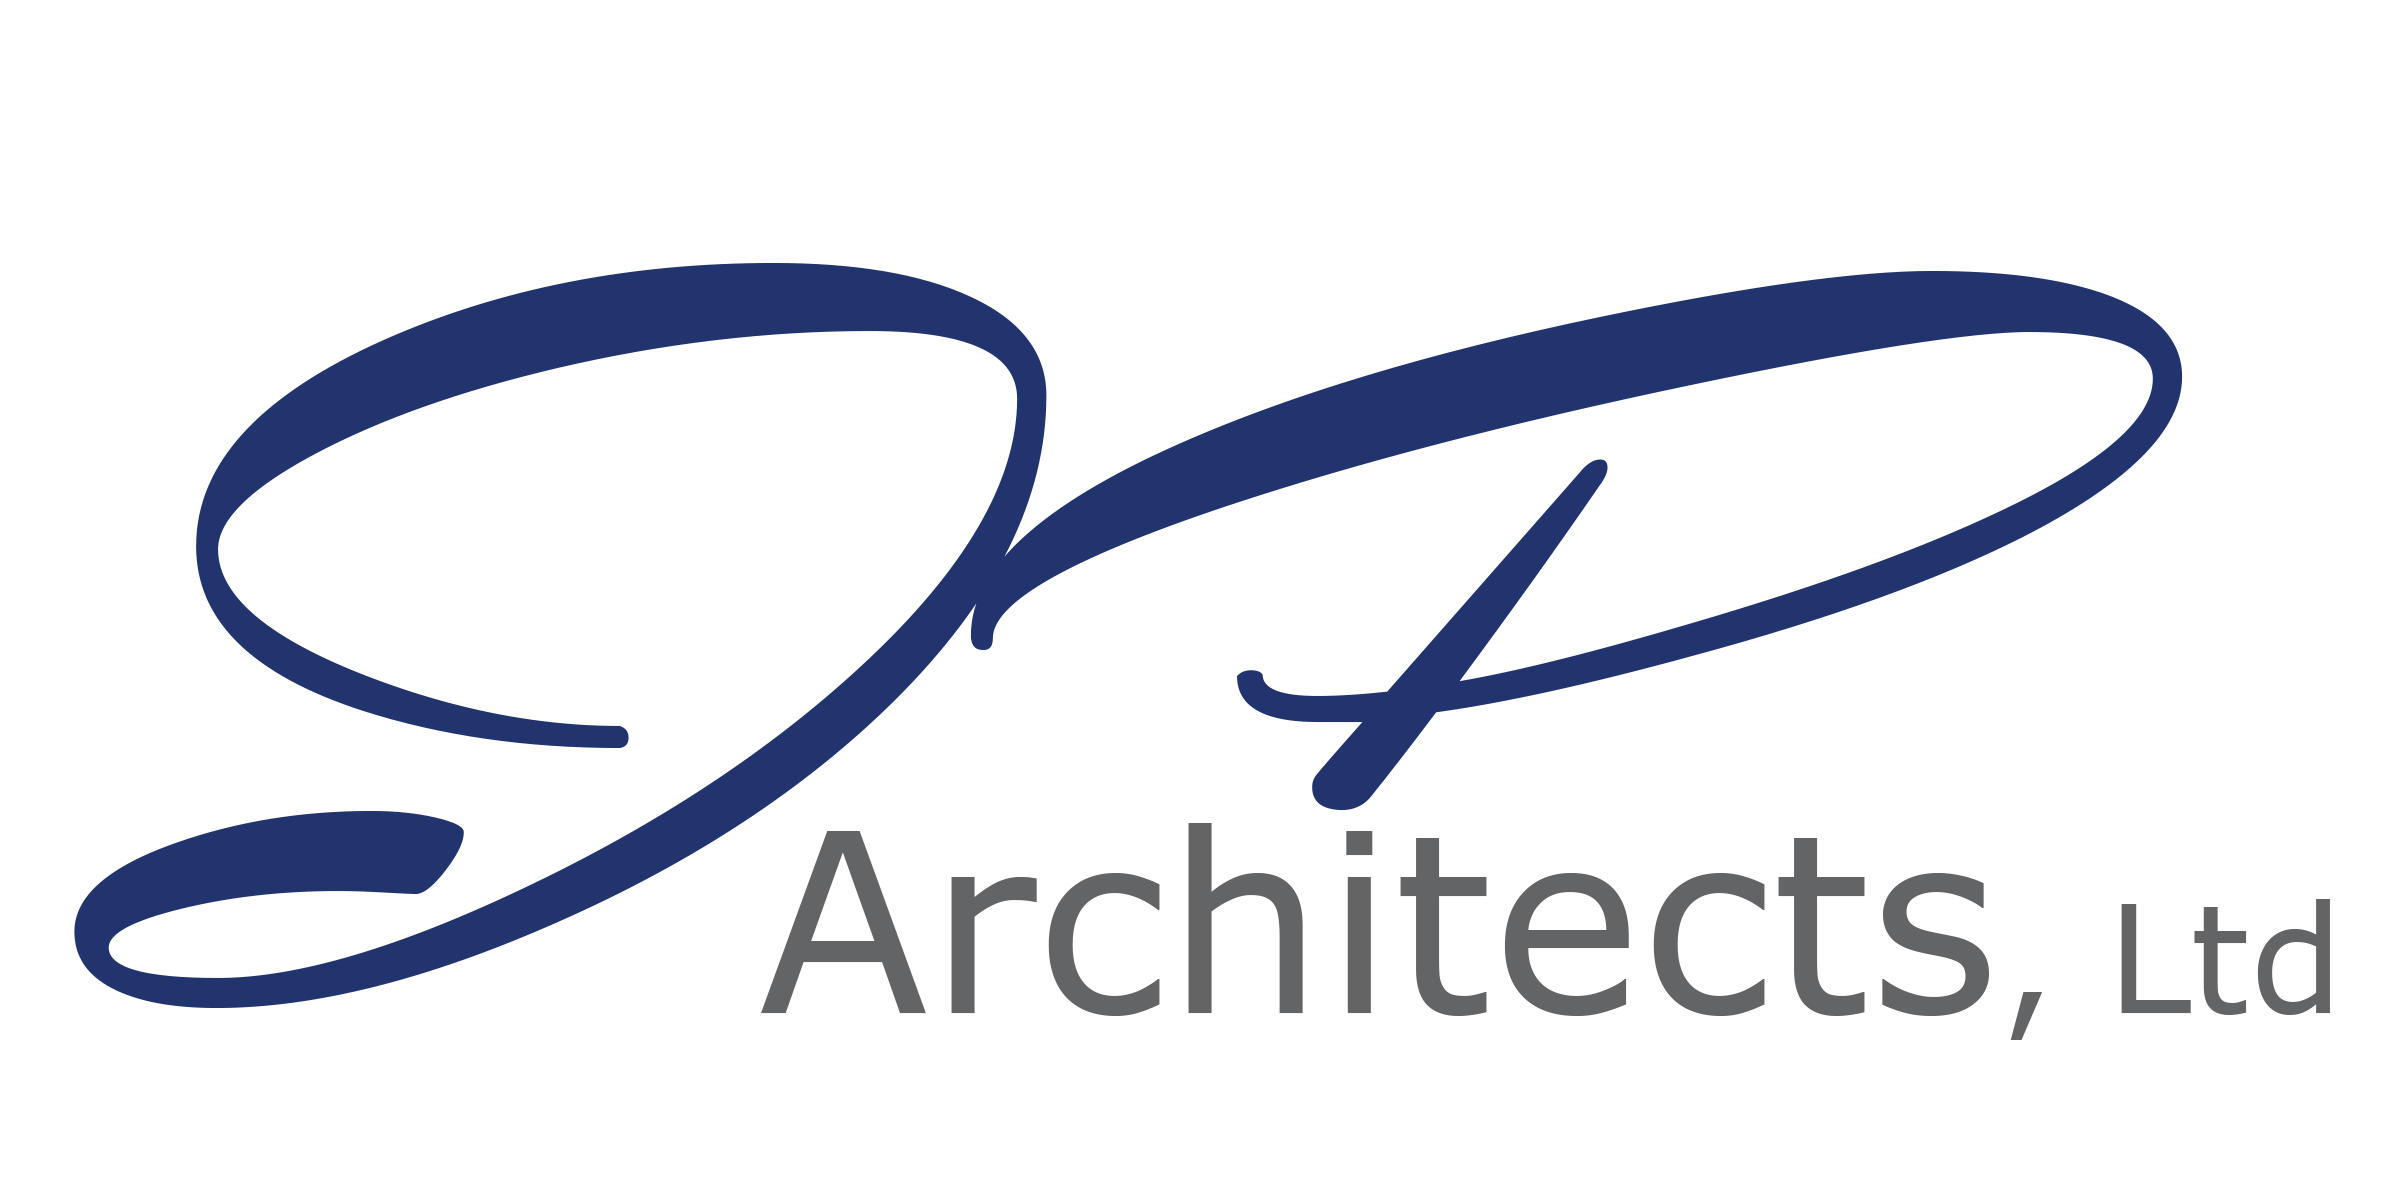 JP Architects, Ltd.